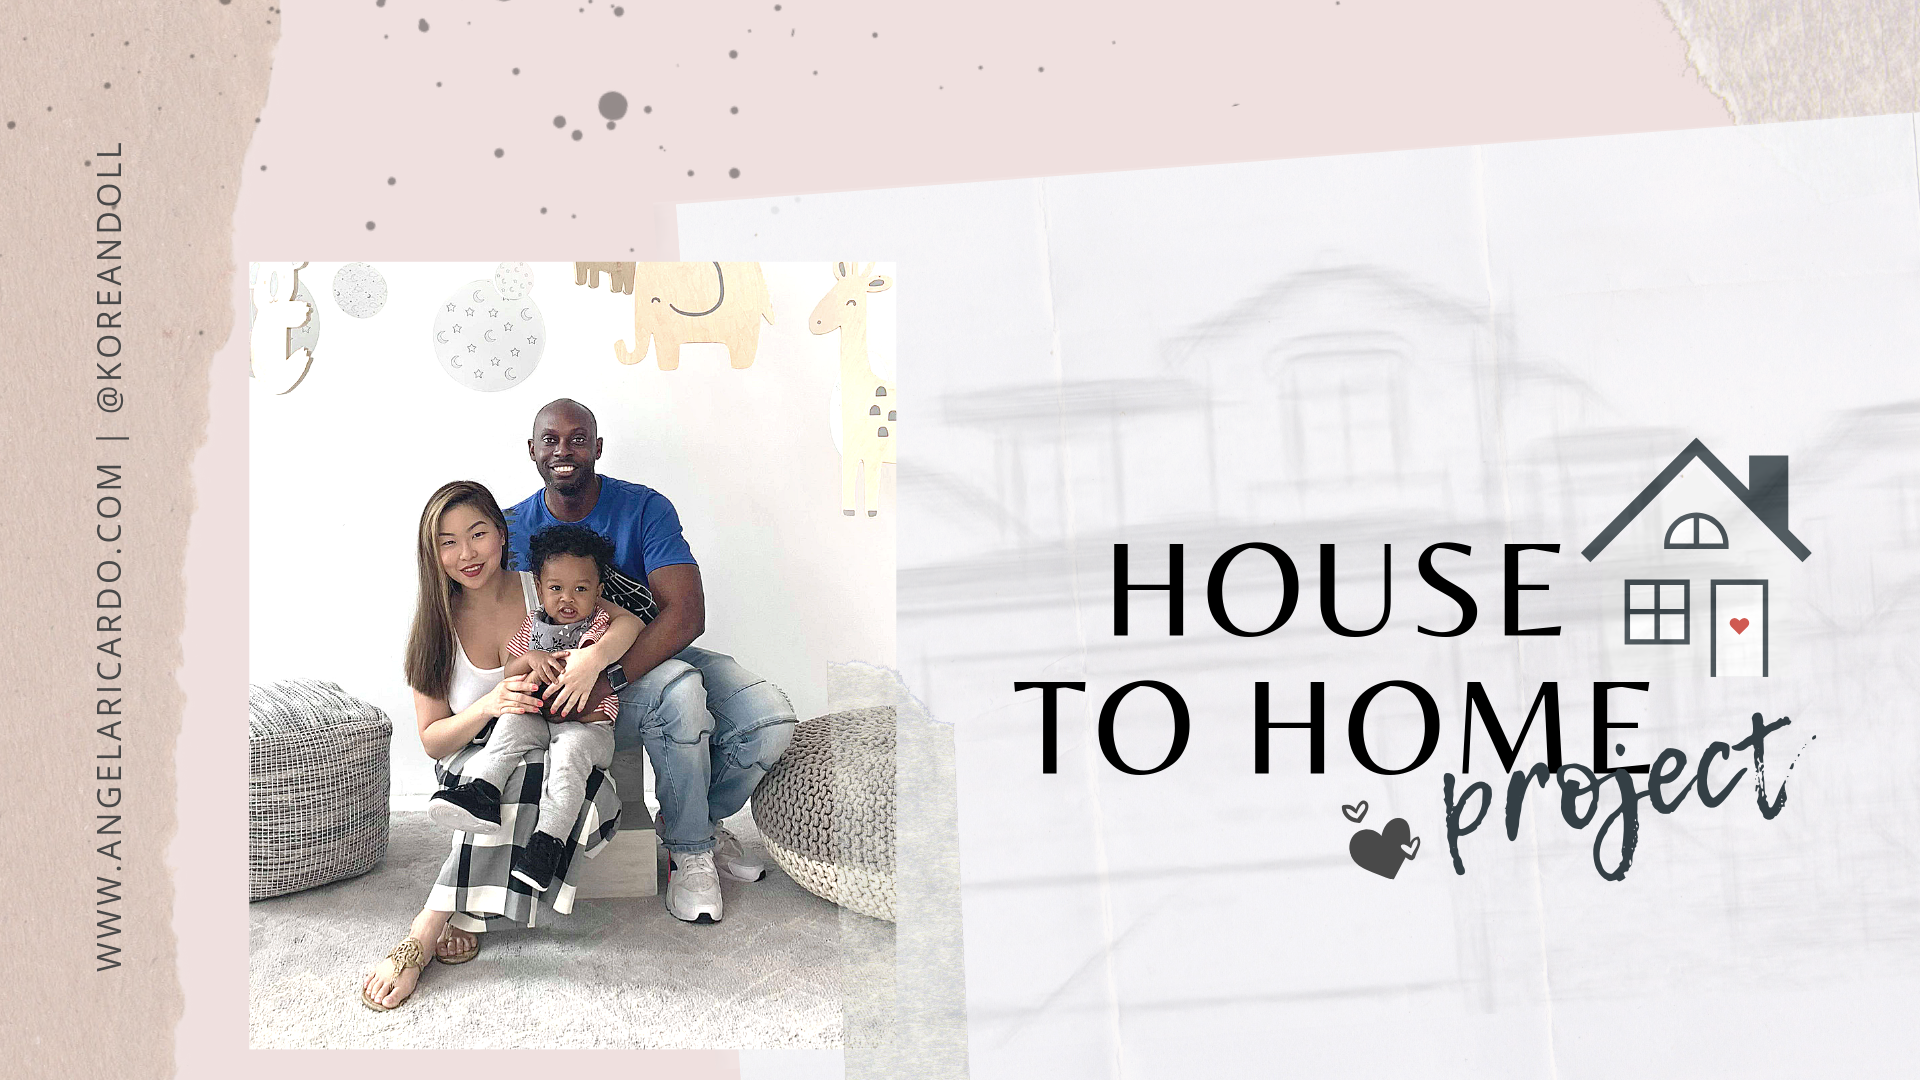 House to Home Project